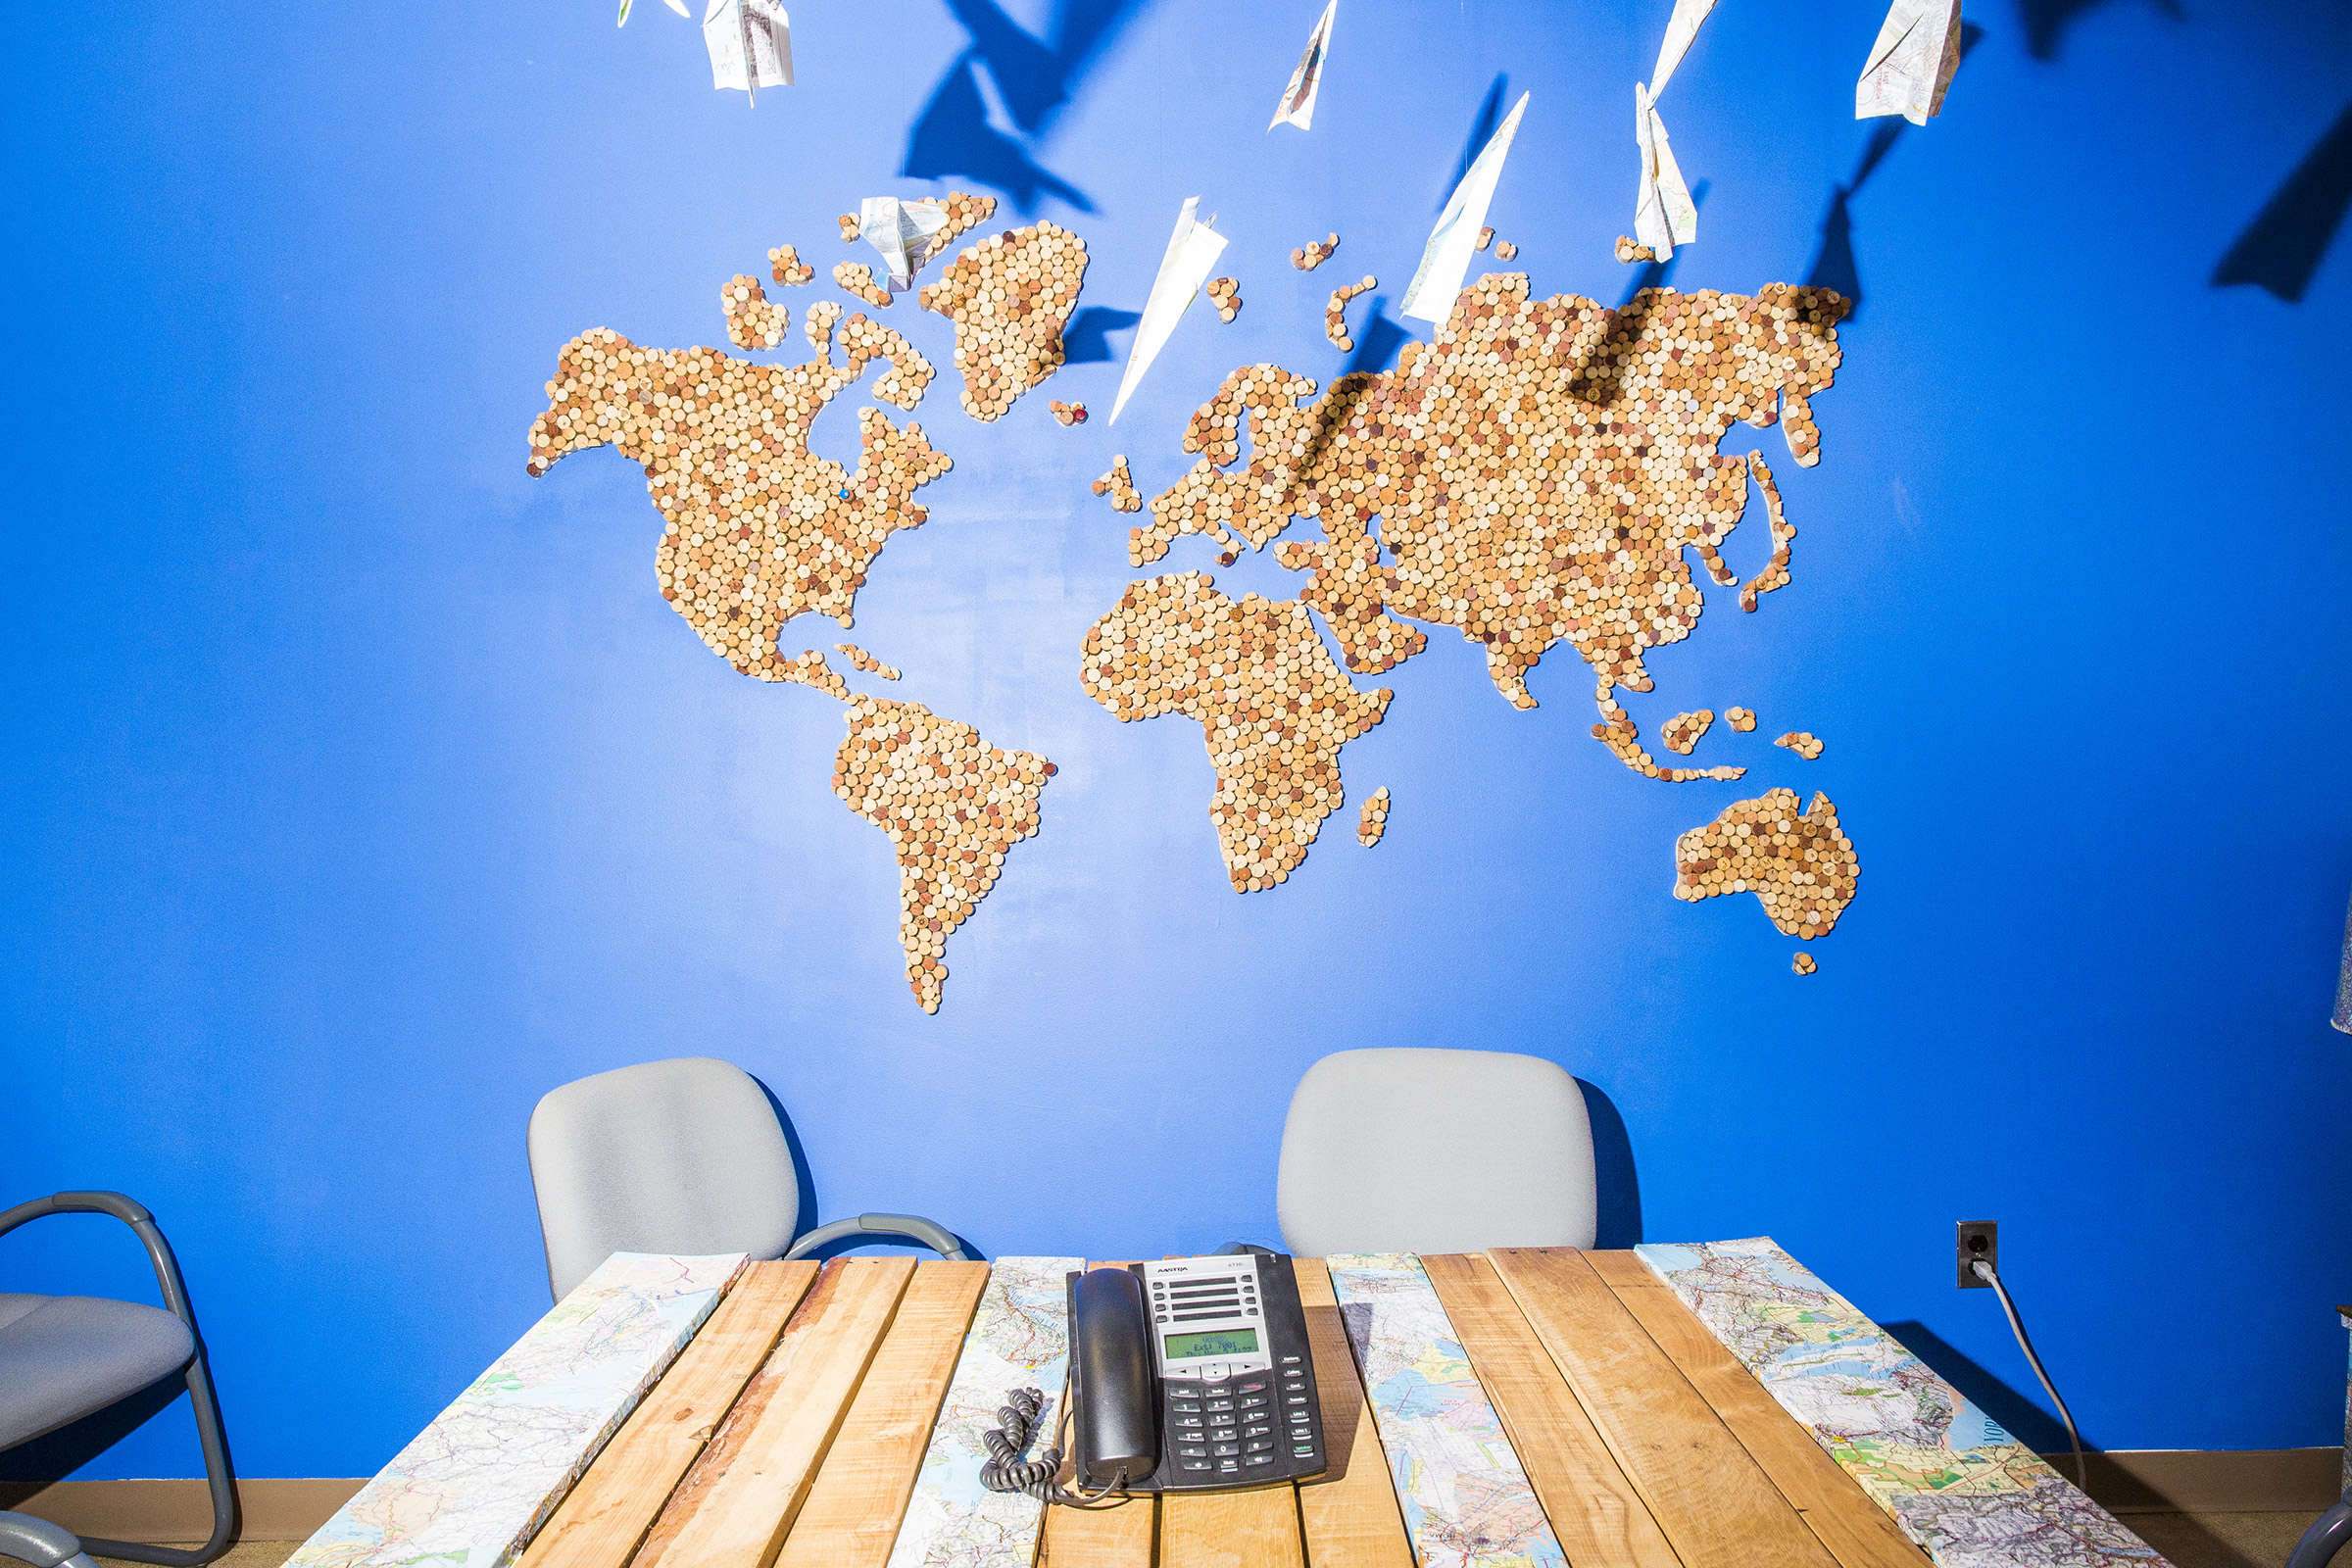 A map of the world made from bottle corks is displayed on a wall at TerraCycle headquarters in Trenton, N.J., on Nov. 9, 2017.